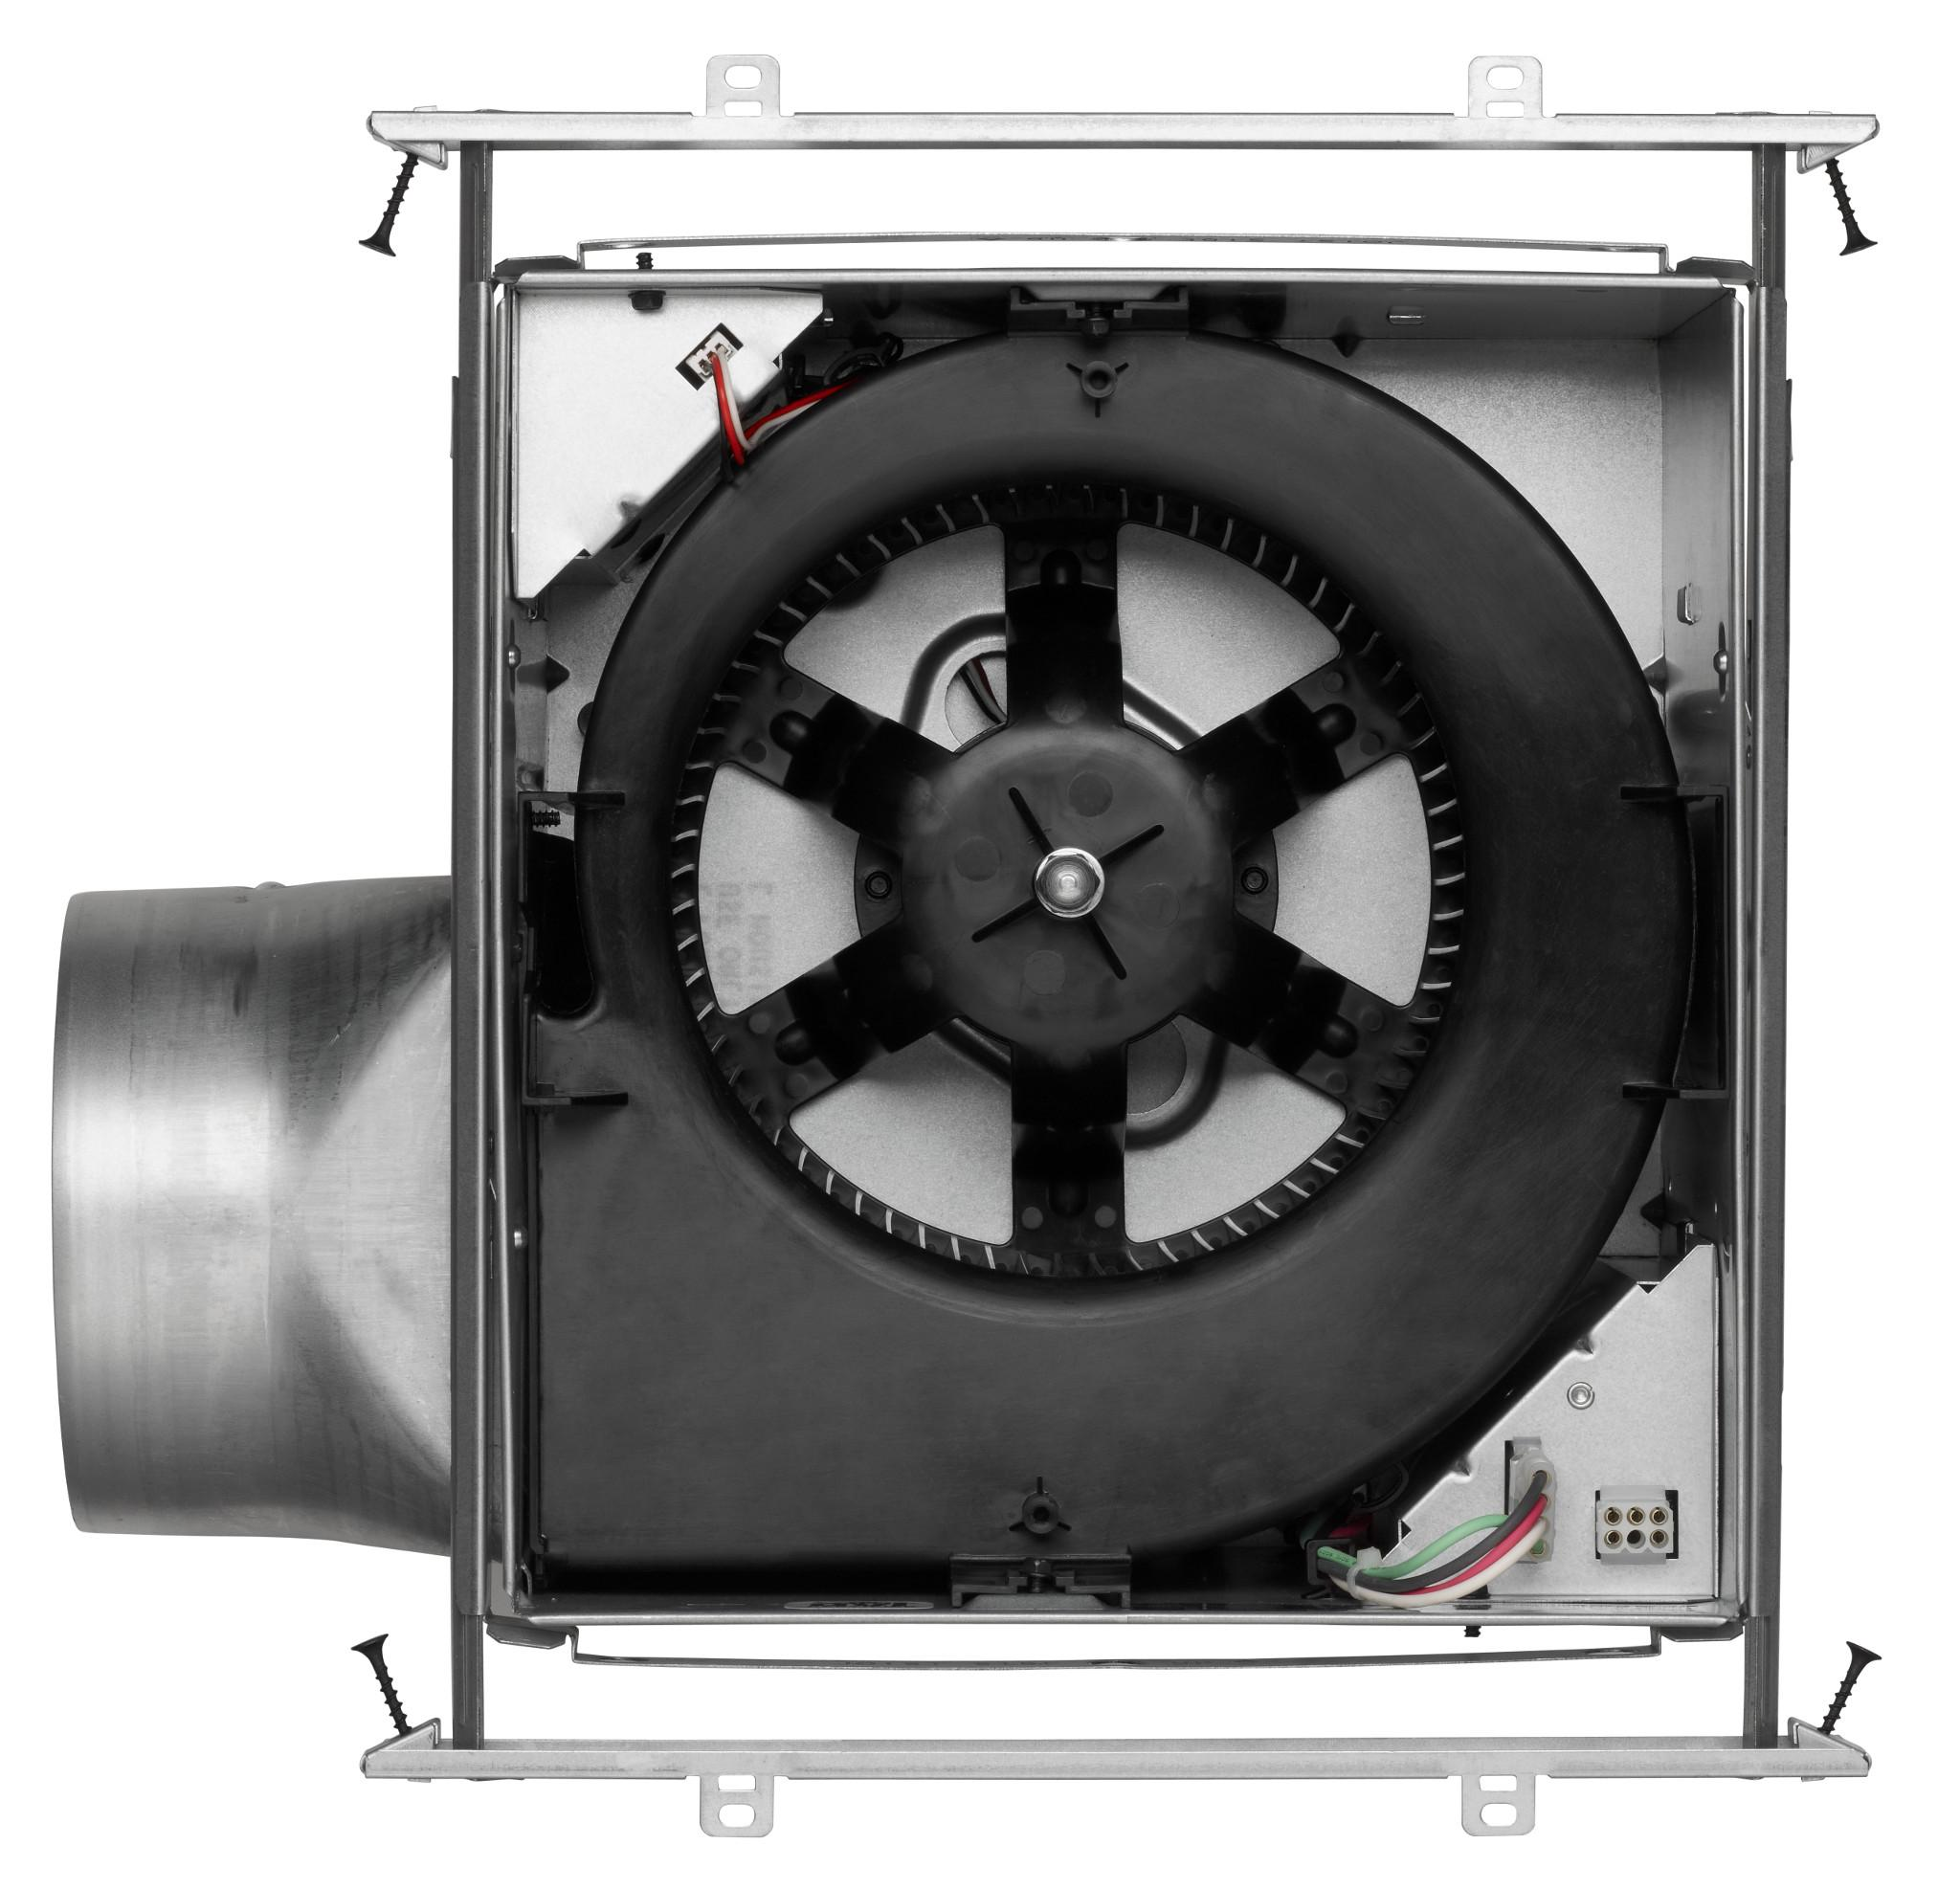 Broan Xb110l Ultra X1 Single Speed Series Ventilation Fan With 36 Electrical Circuit Have One Switchone Way 5a 210v Green Interior View